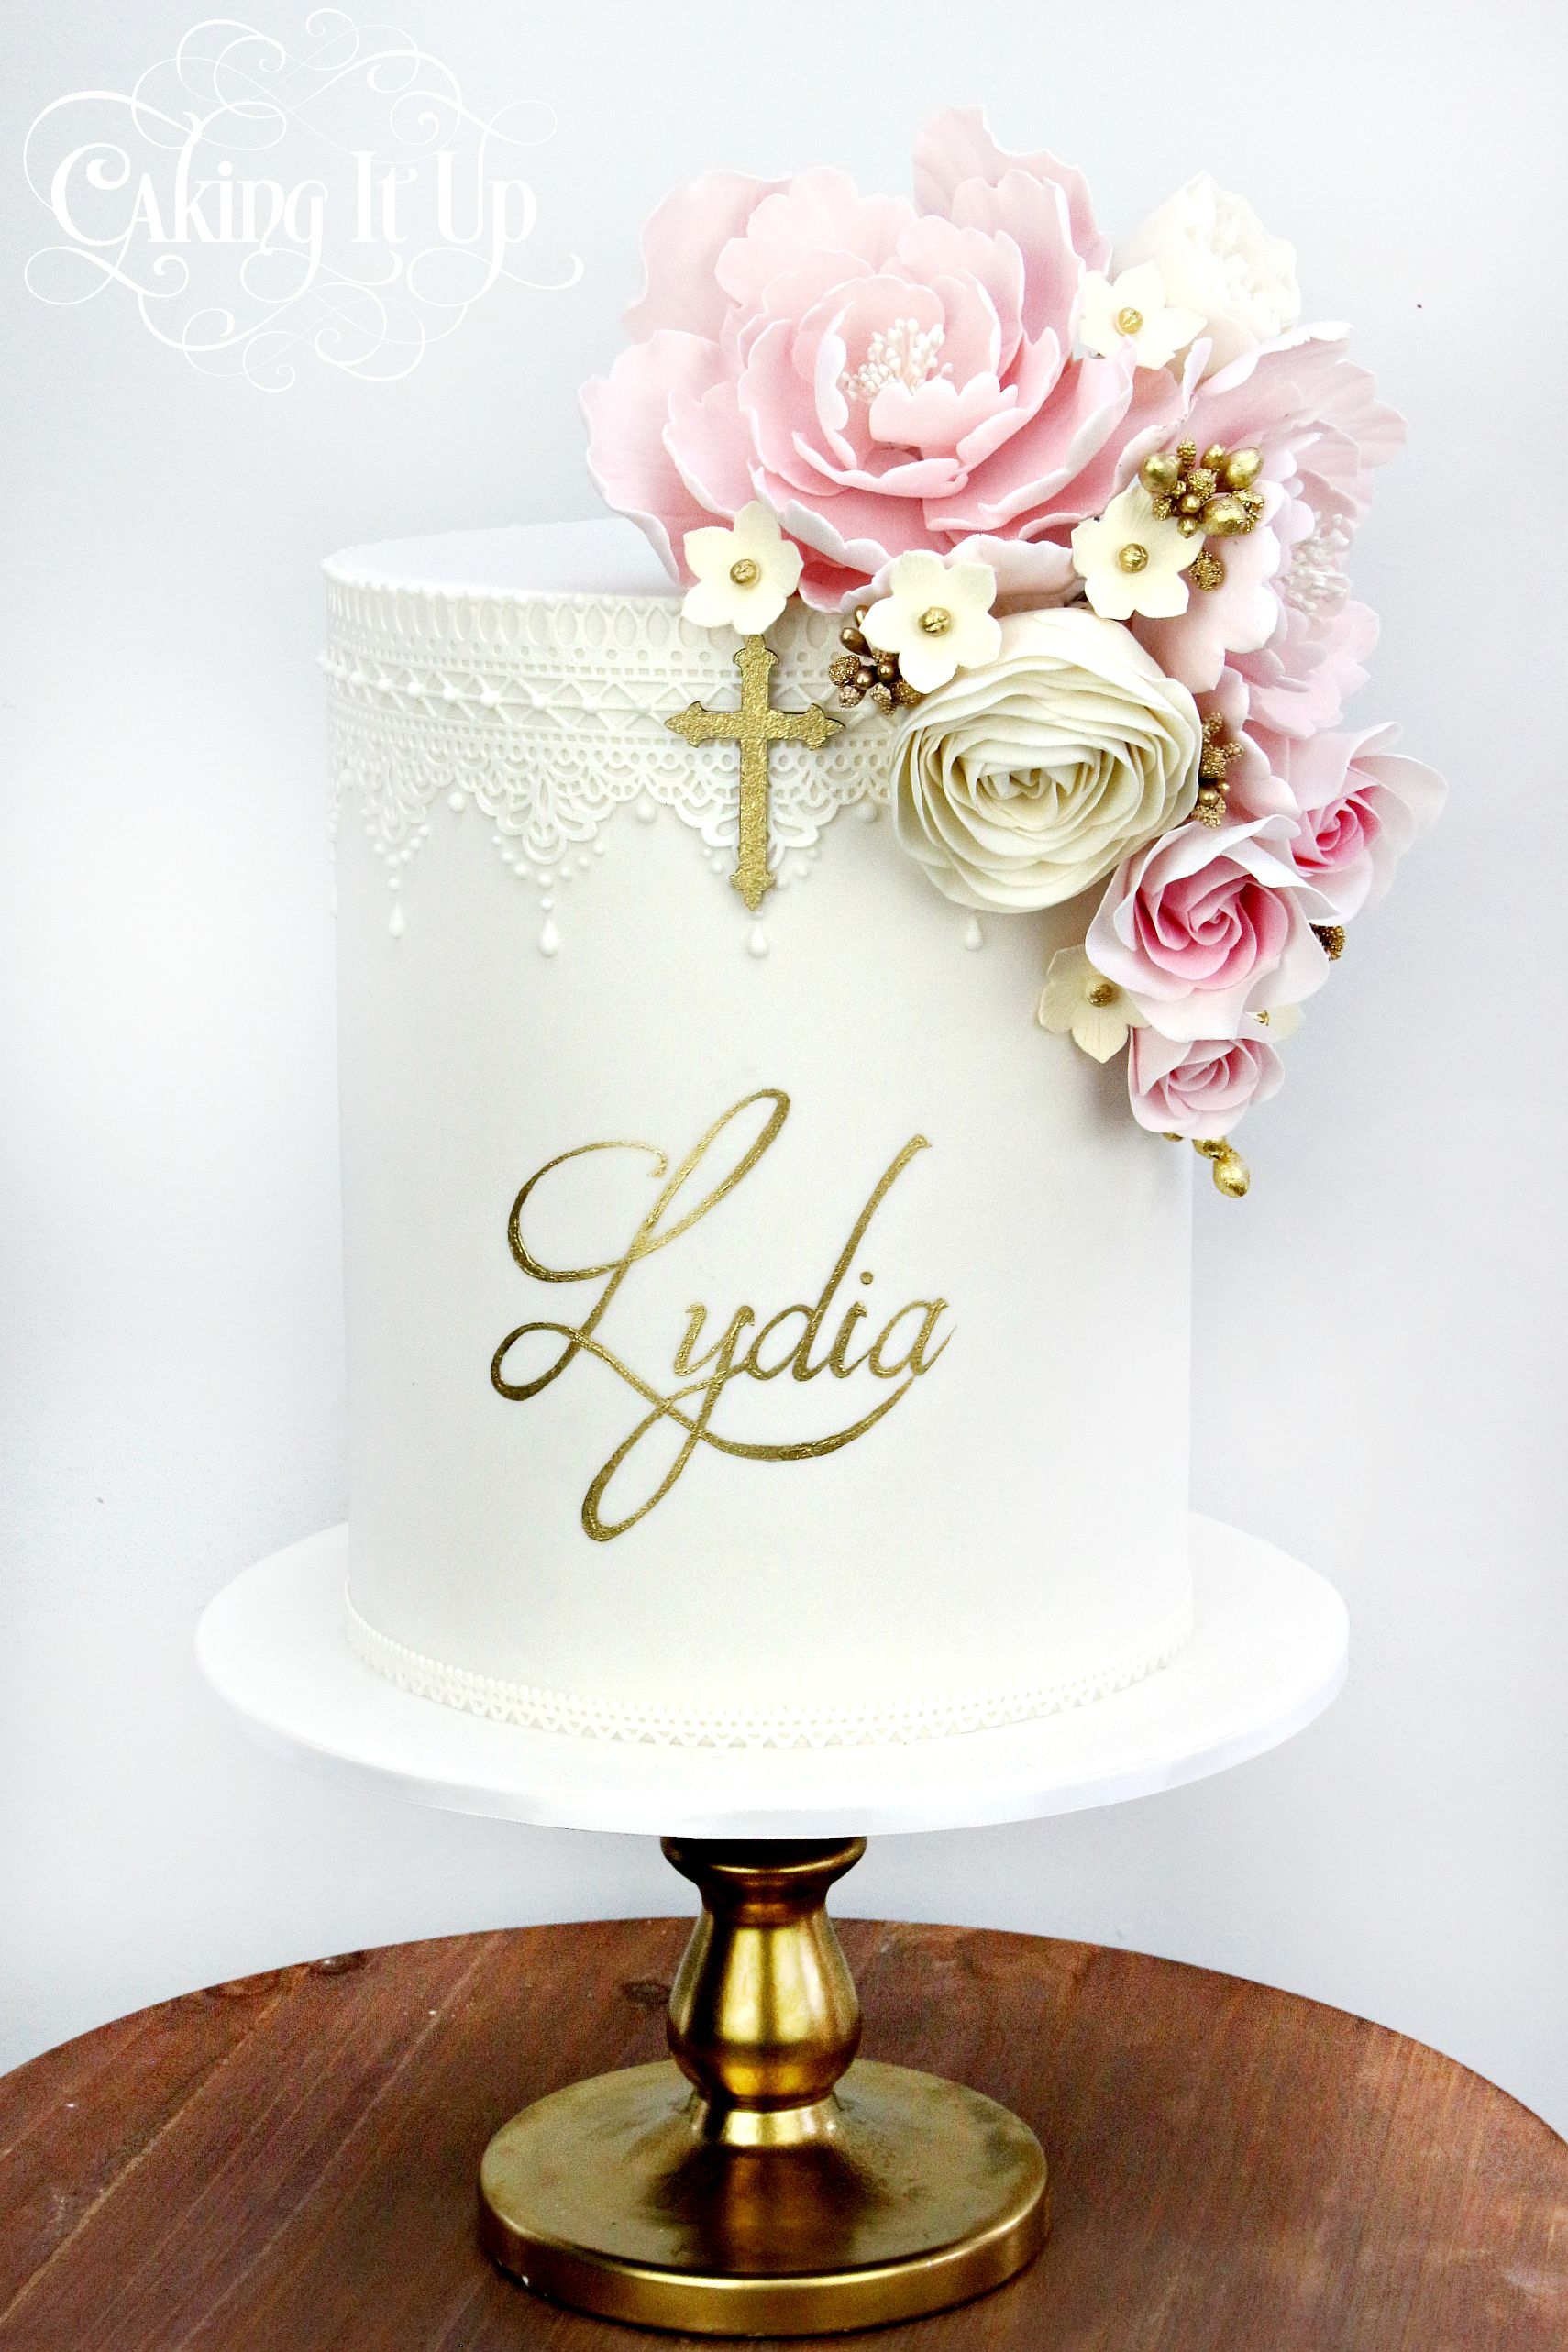 is it ok to put fresh flowers on a cake